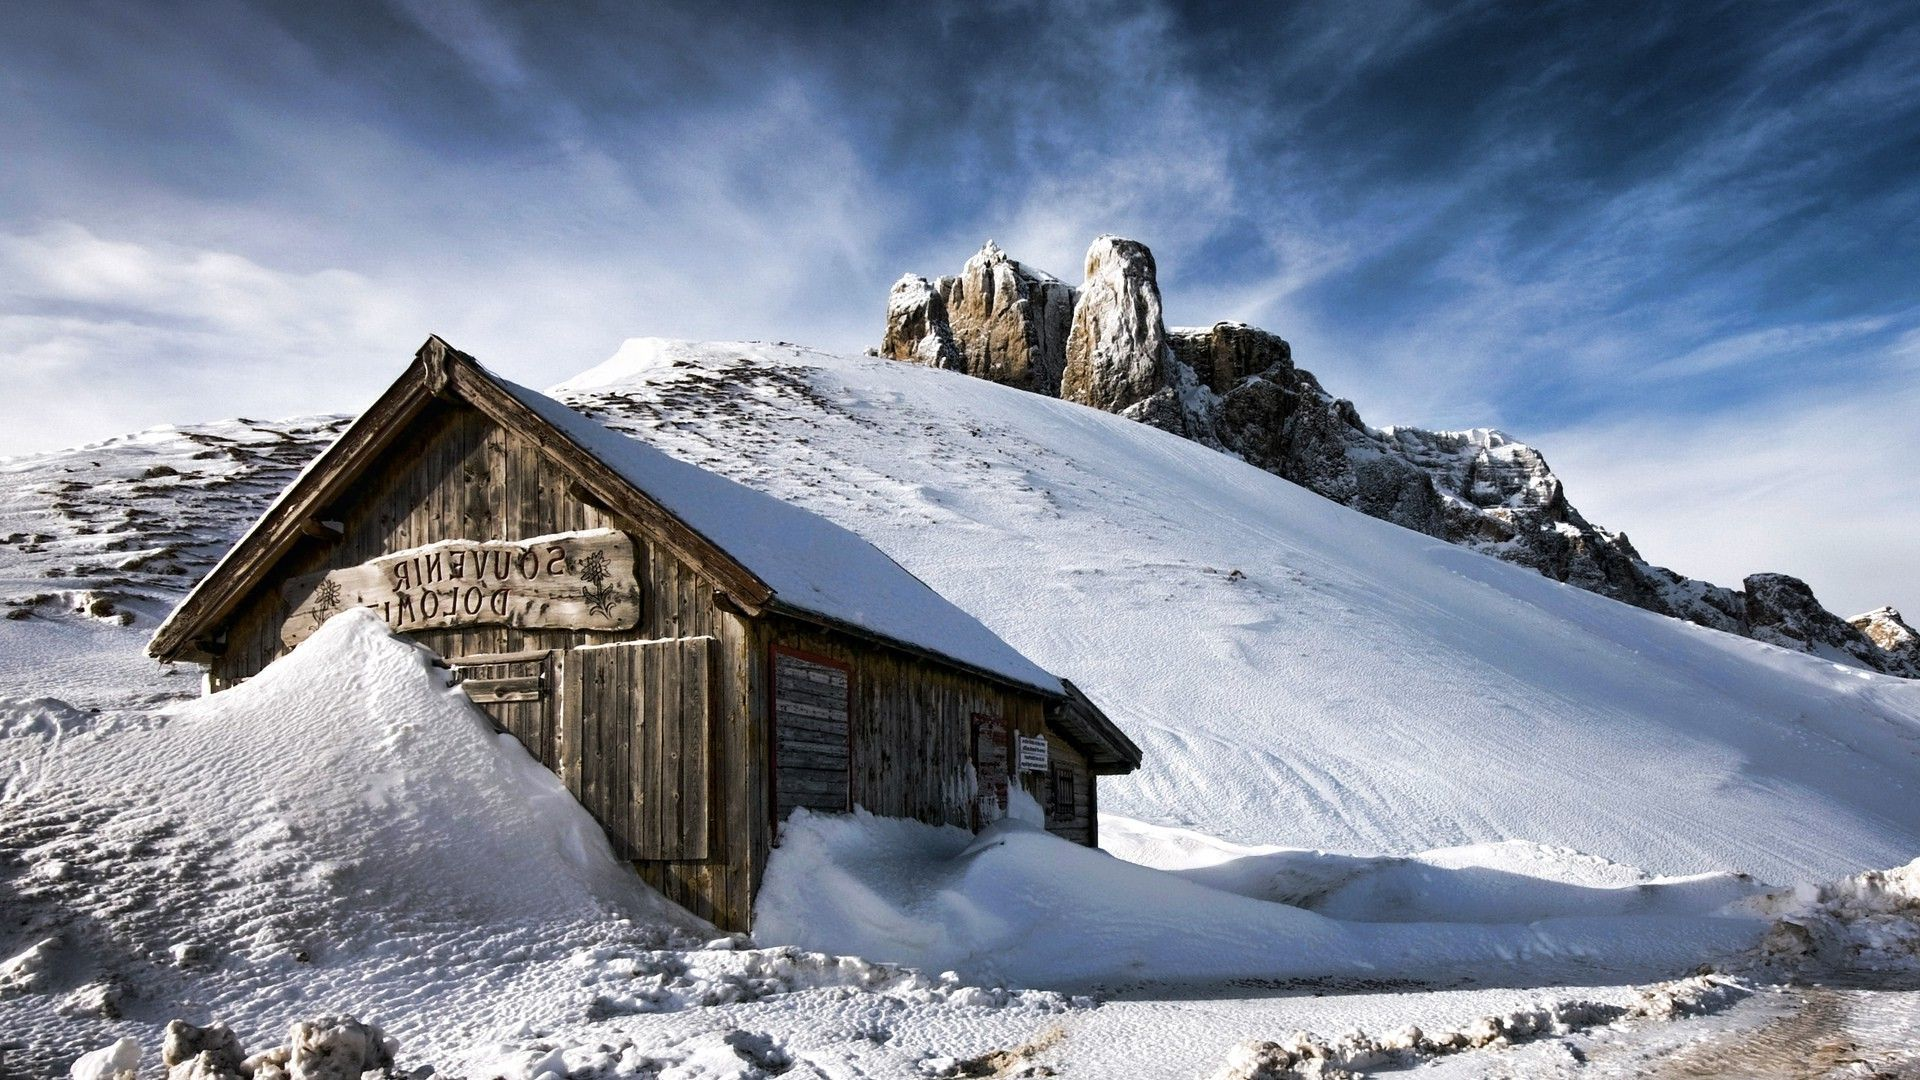 Nature Landscape Winter Snow Wood House Mountain Hill Clouds Dolomites Mountains Snowy Peak Ro Free Desktop Wallpaper House In The Woods Wallpaper